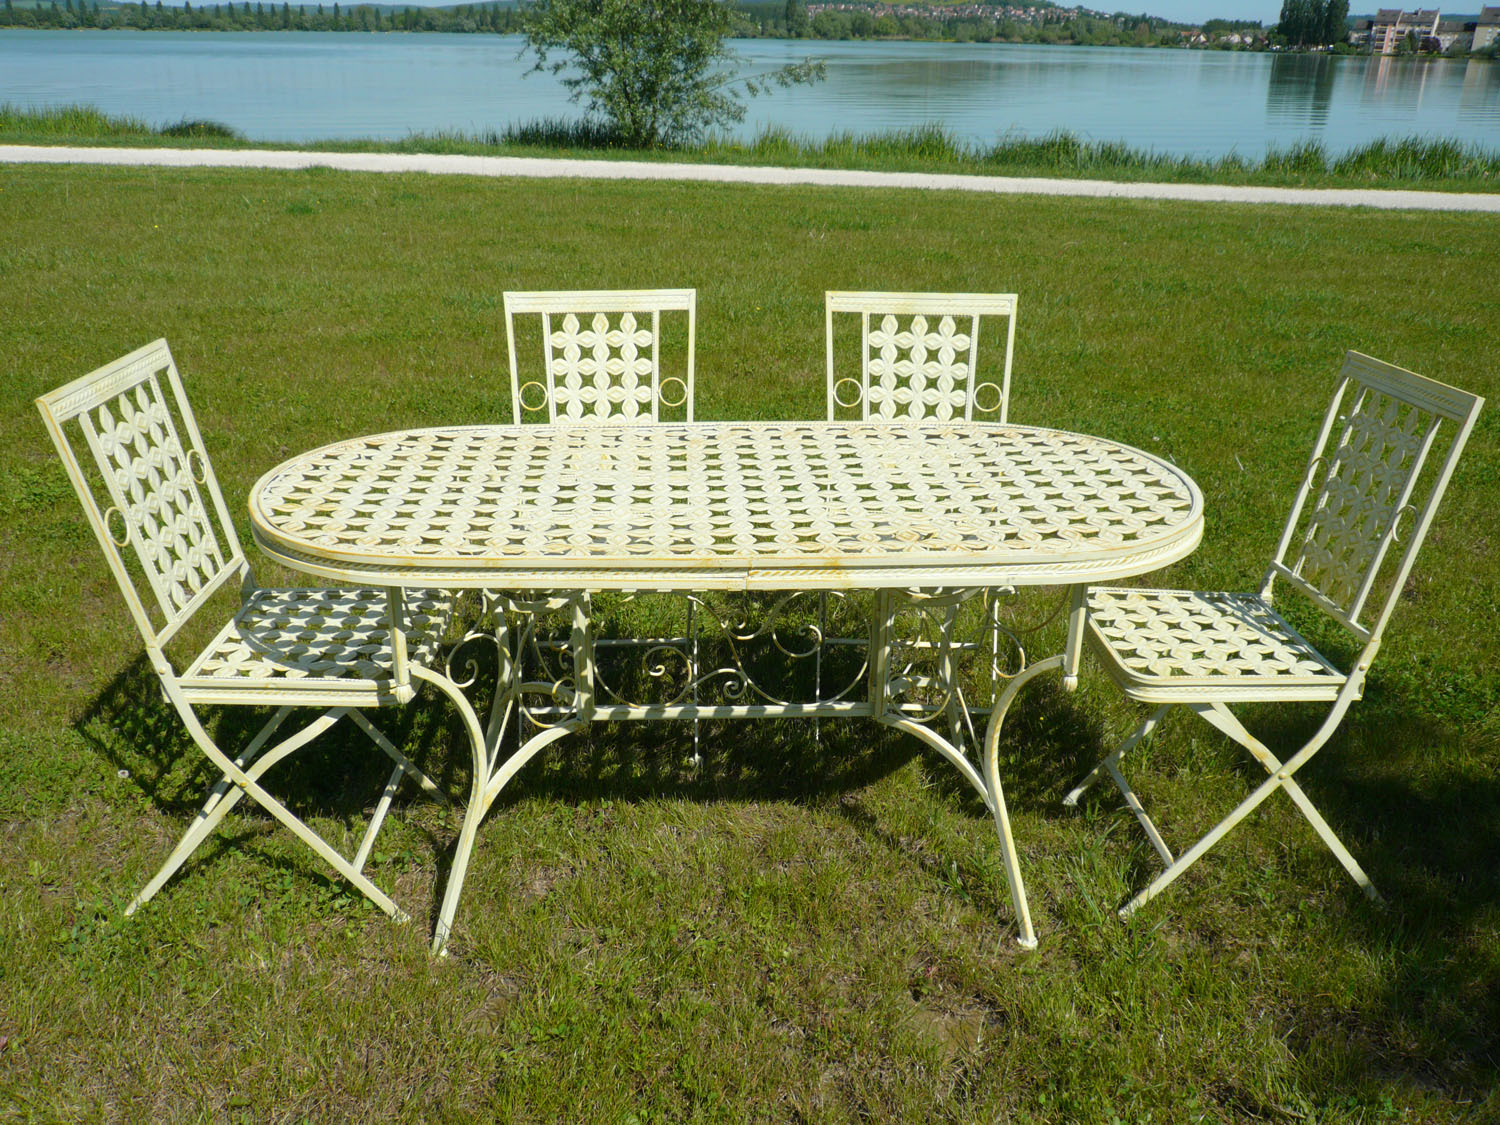 Salon de jardin en fer forg tables chaises bancs for Salon de jardin en fer